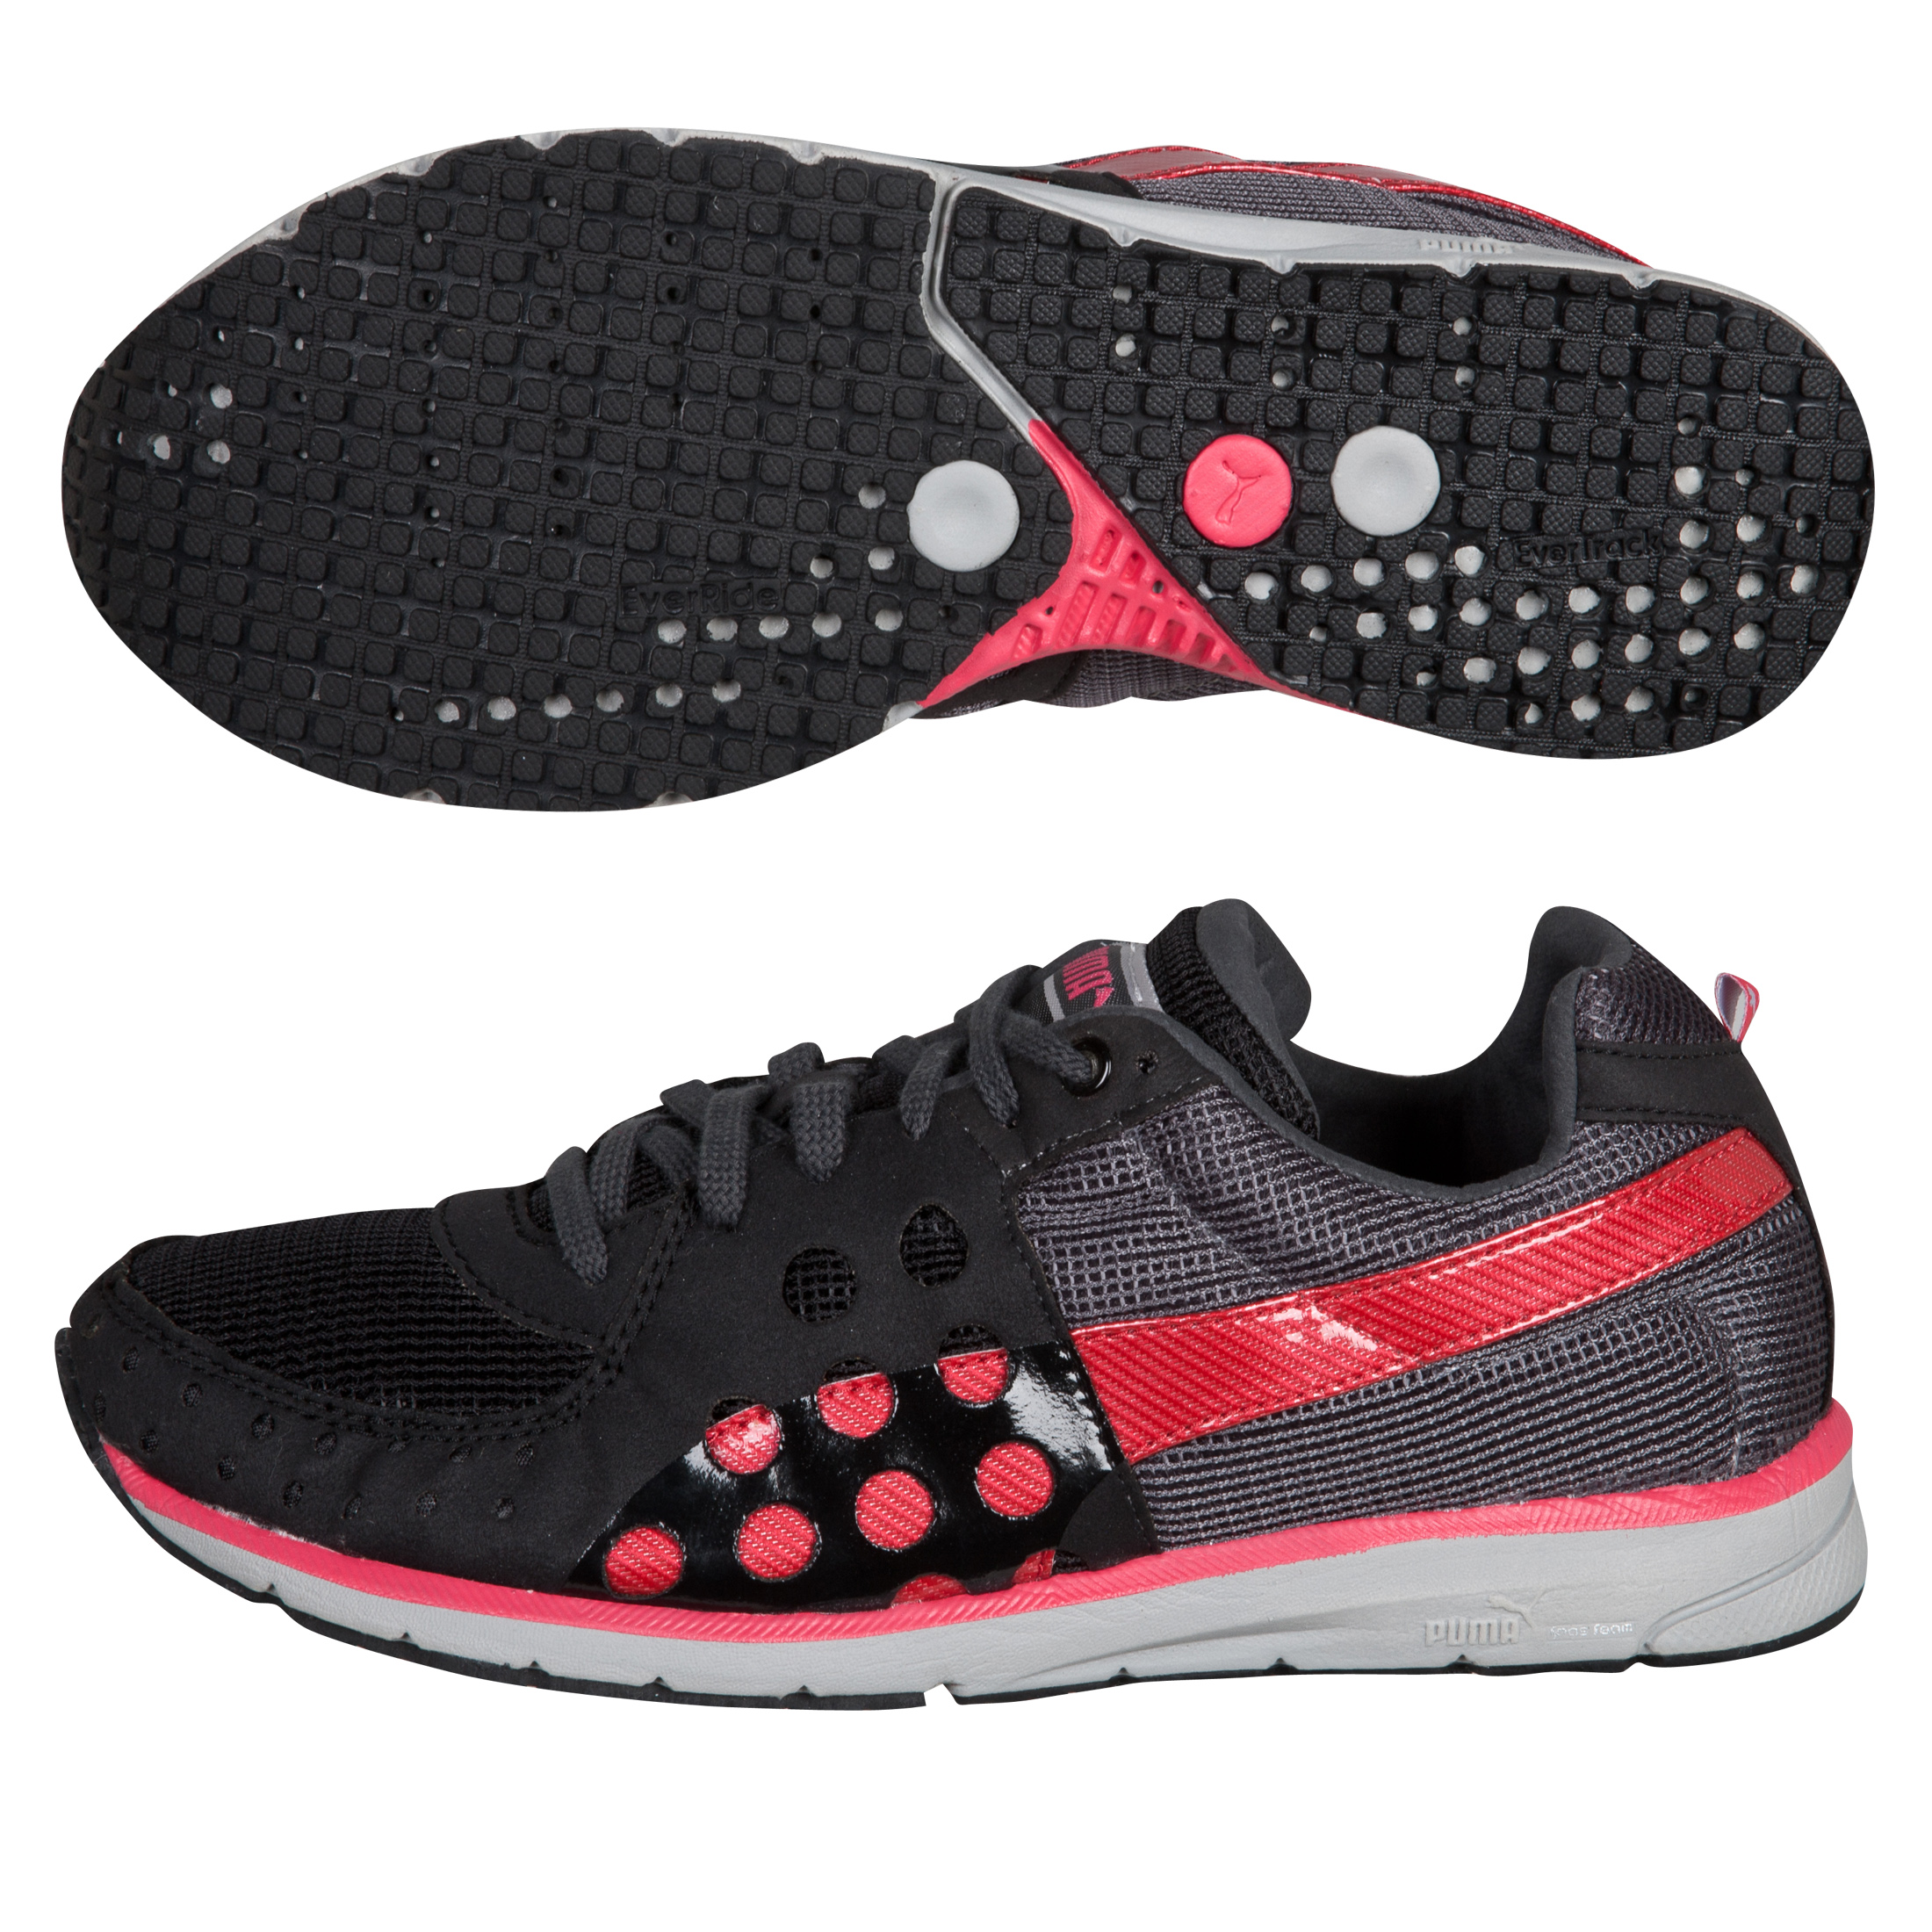 Puma Faas 300 Trainers - Black/Dark Shadow - Womens